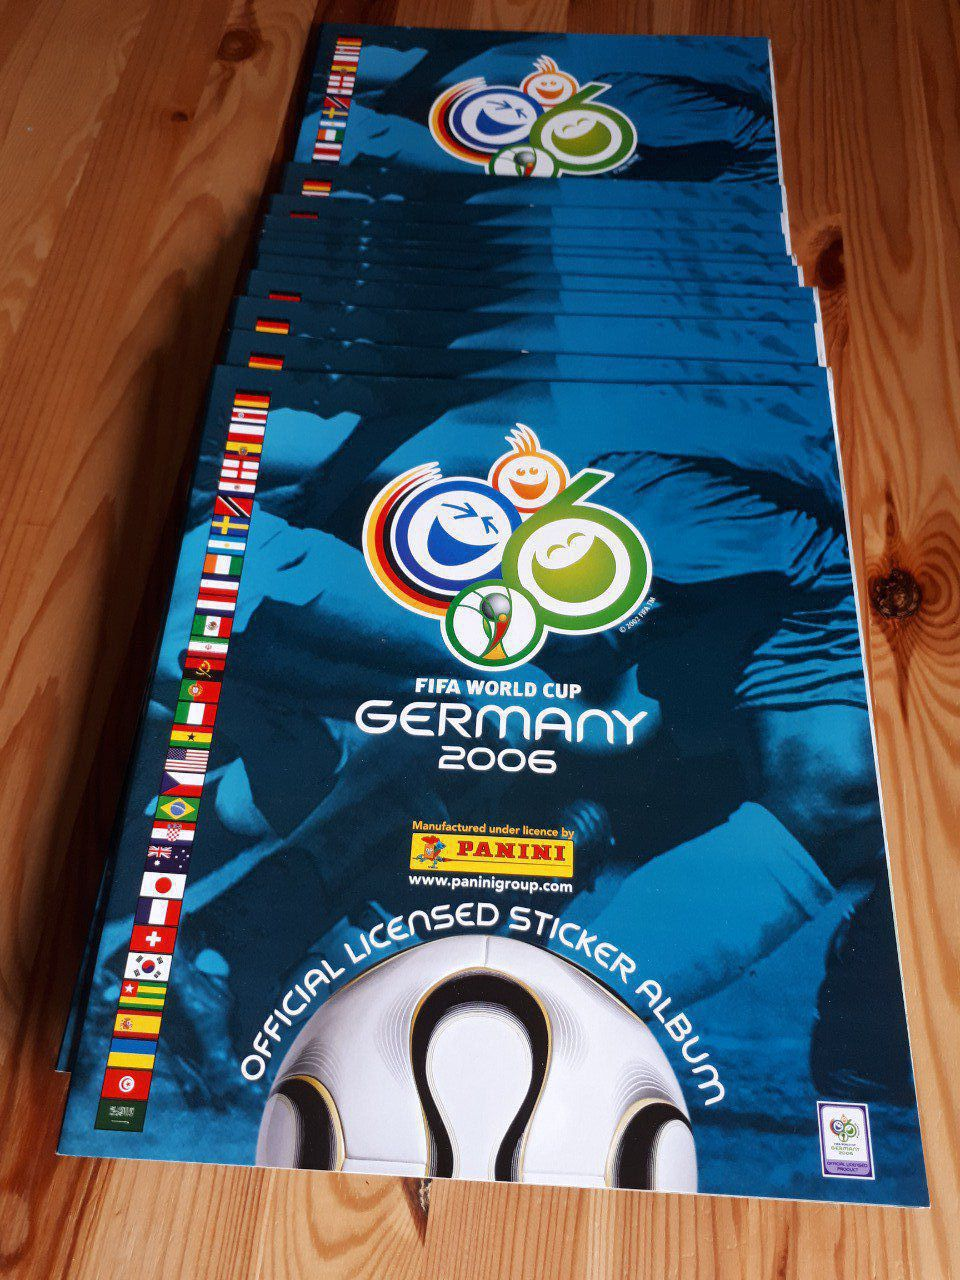 Panini Album vide Germany 2006 vers Europe